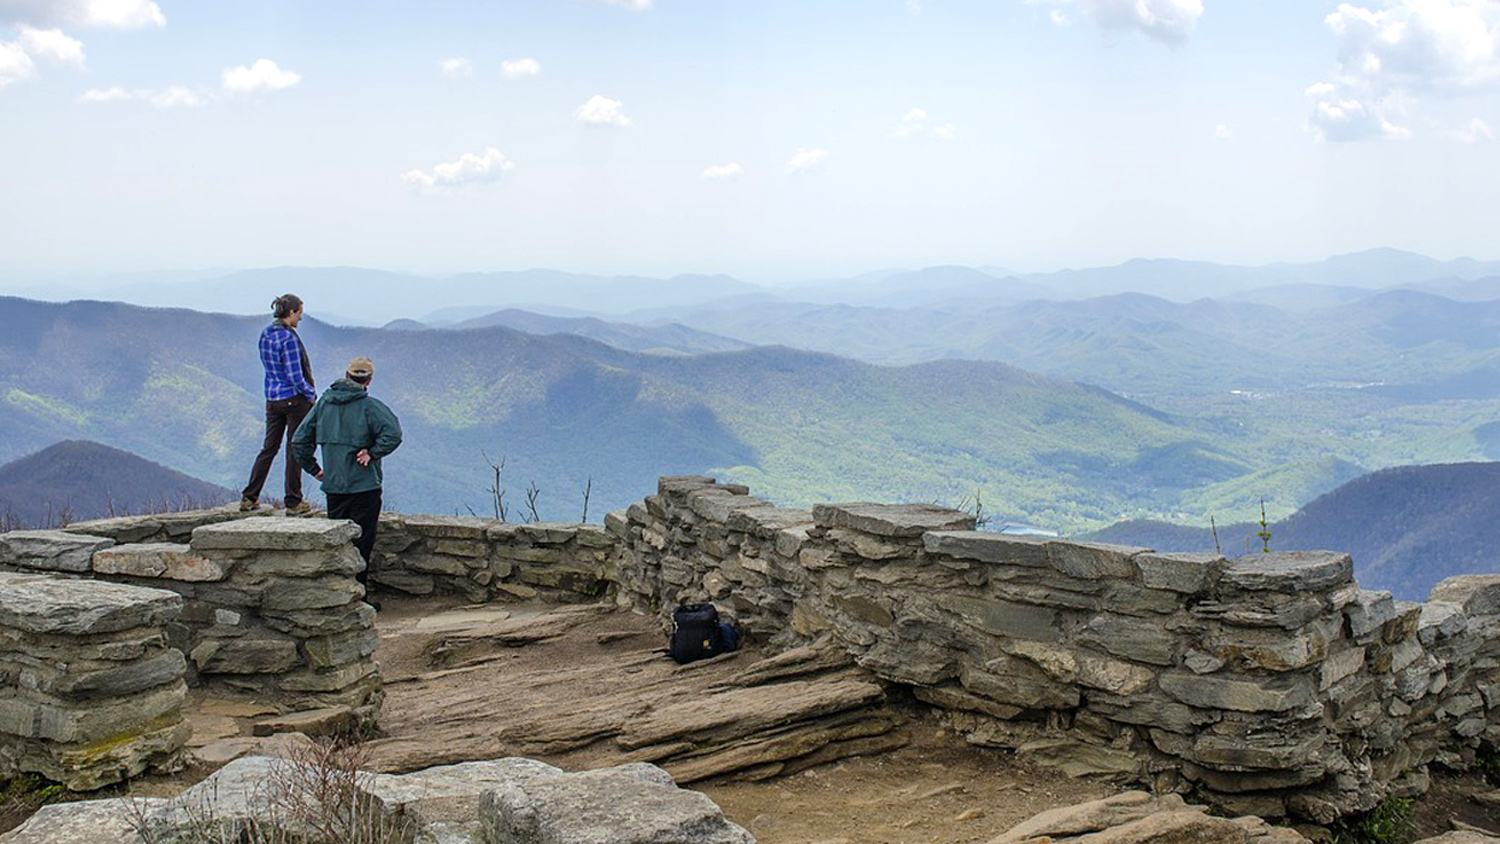 State park - Protected Areas and Landscapes - Parks Recreation and Tourism Management NC State